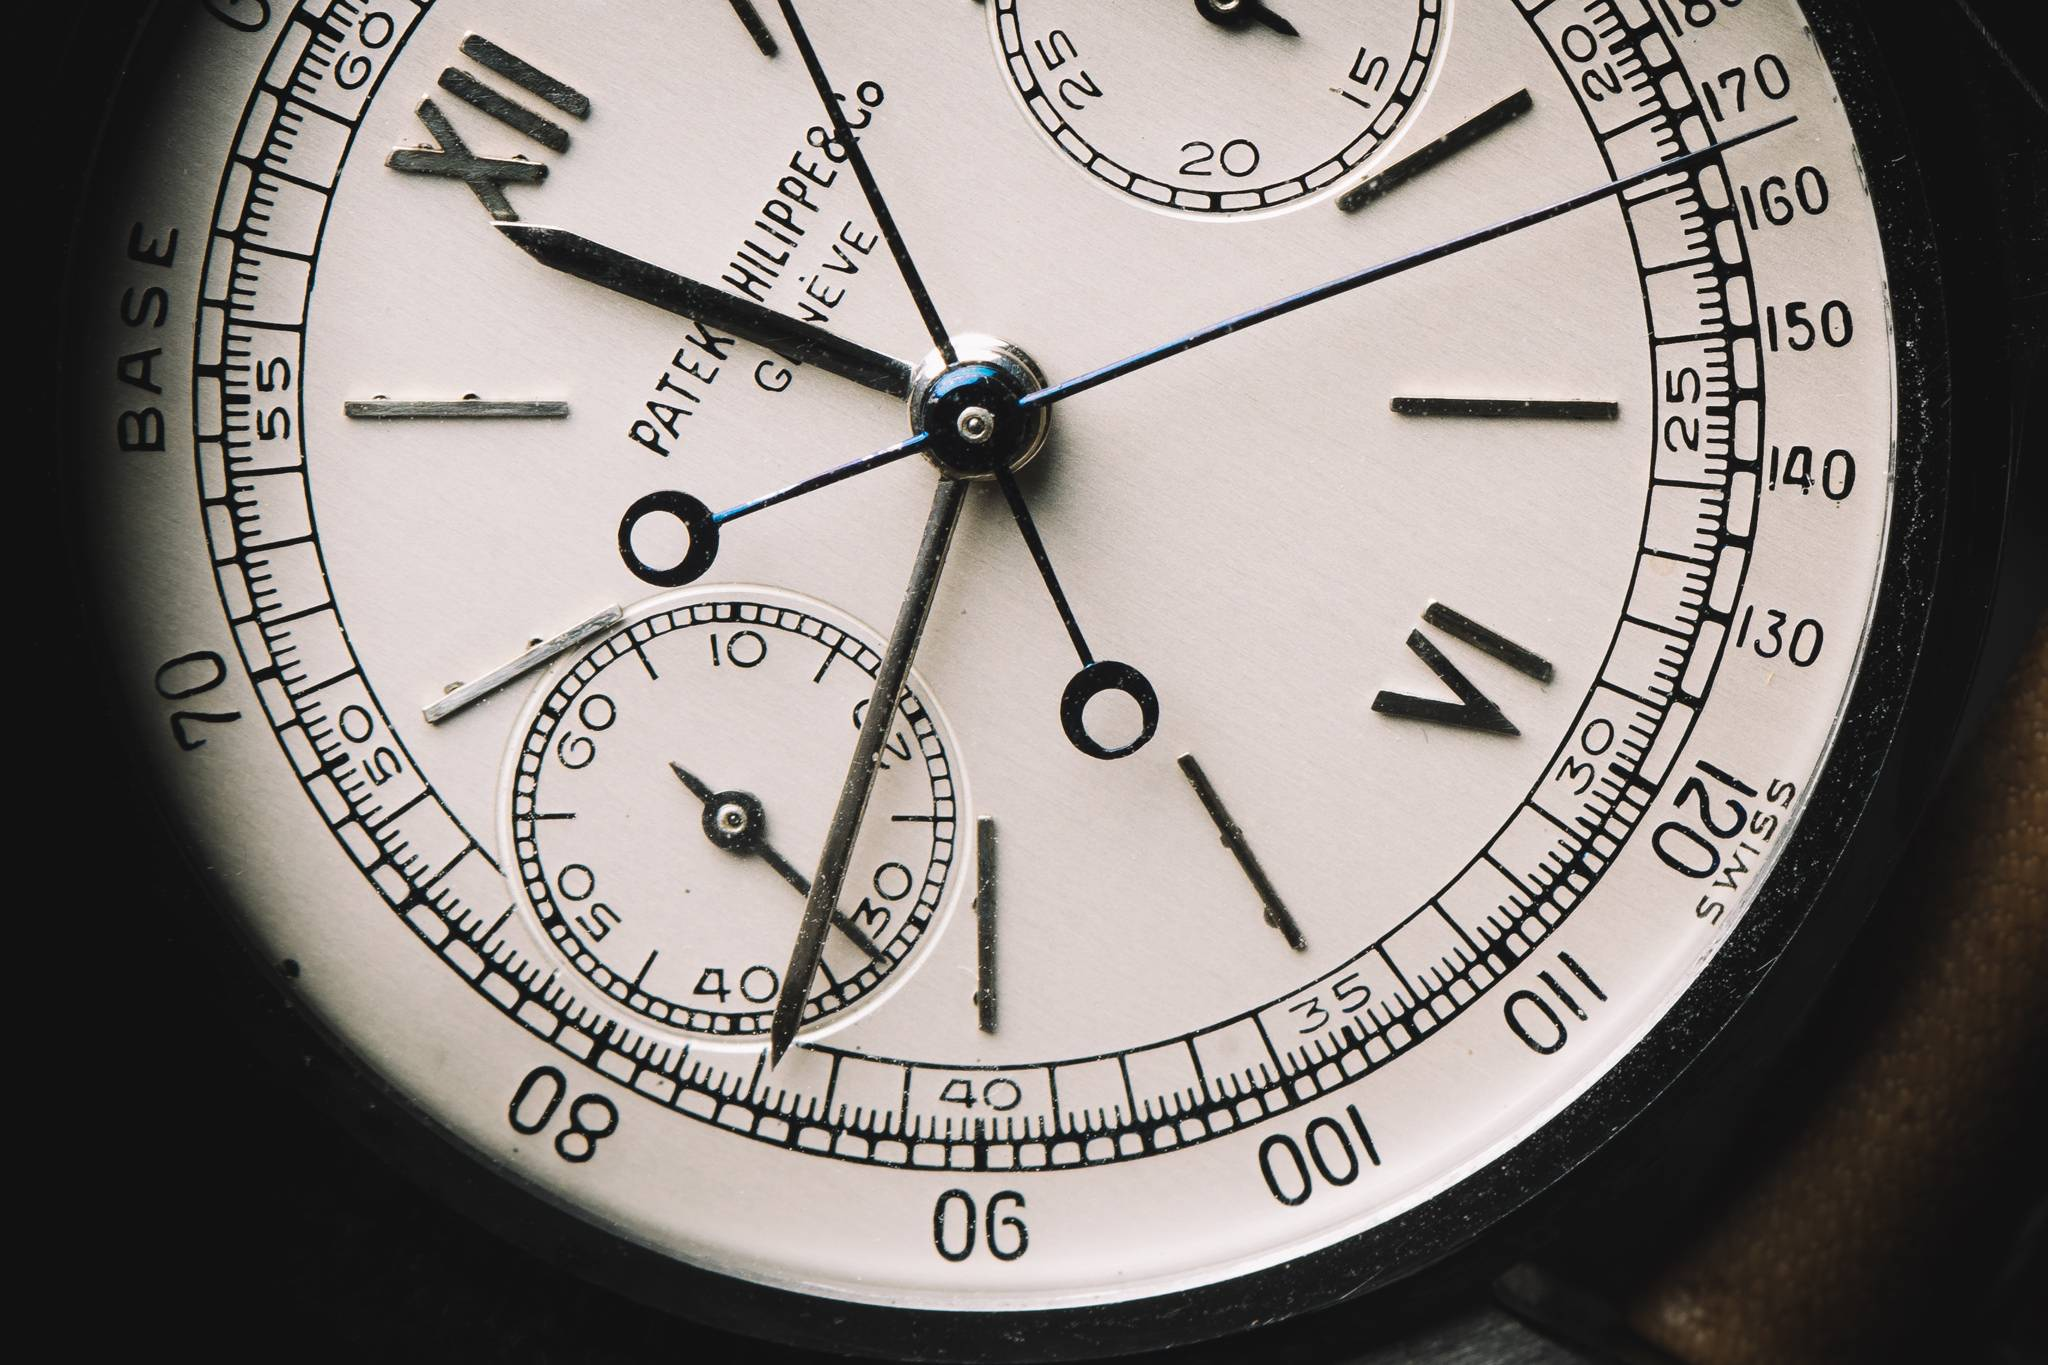 PATEK PHILIPPE 'Steel Split-Seconds', Reference 1436, Stainless Steel, 1945 Dial